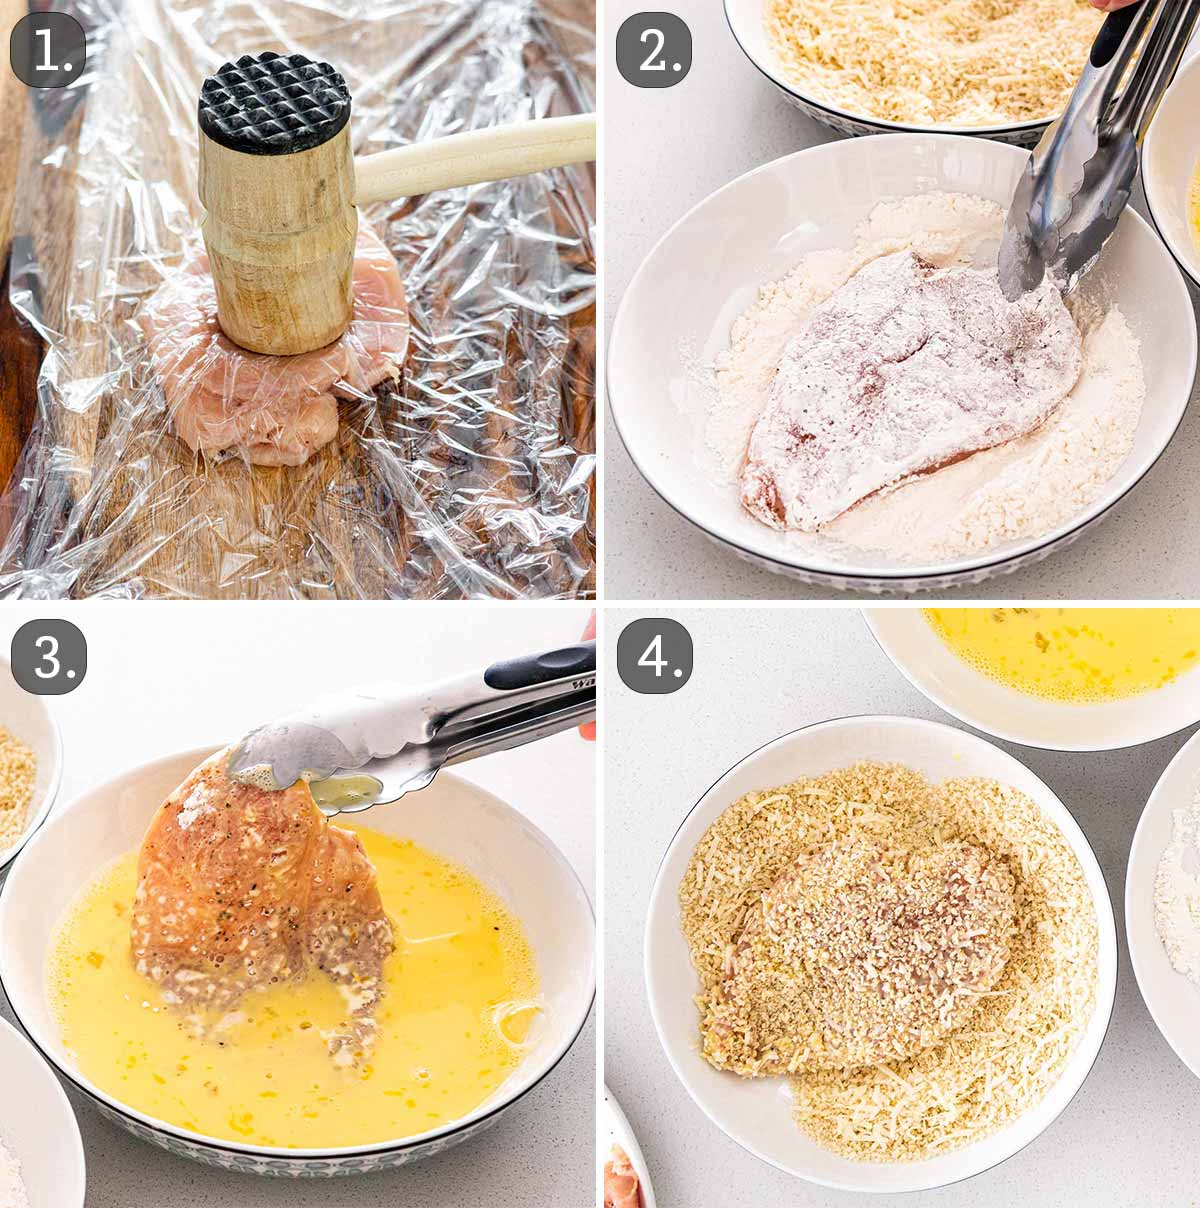 process shots showing how to prep chicken to make chicken milanese.